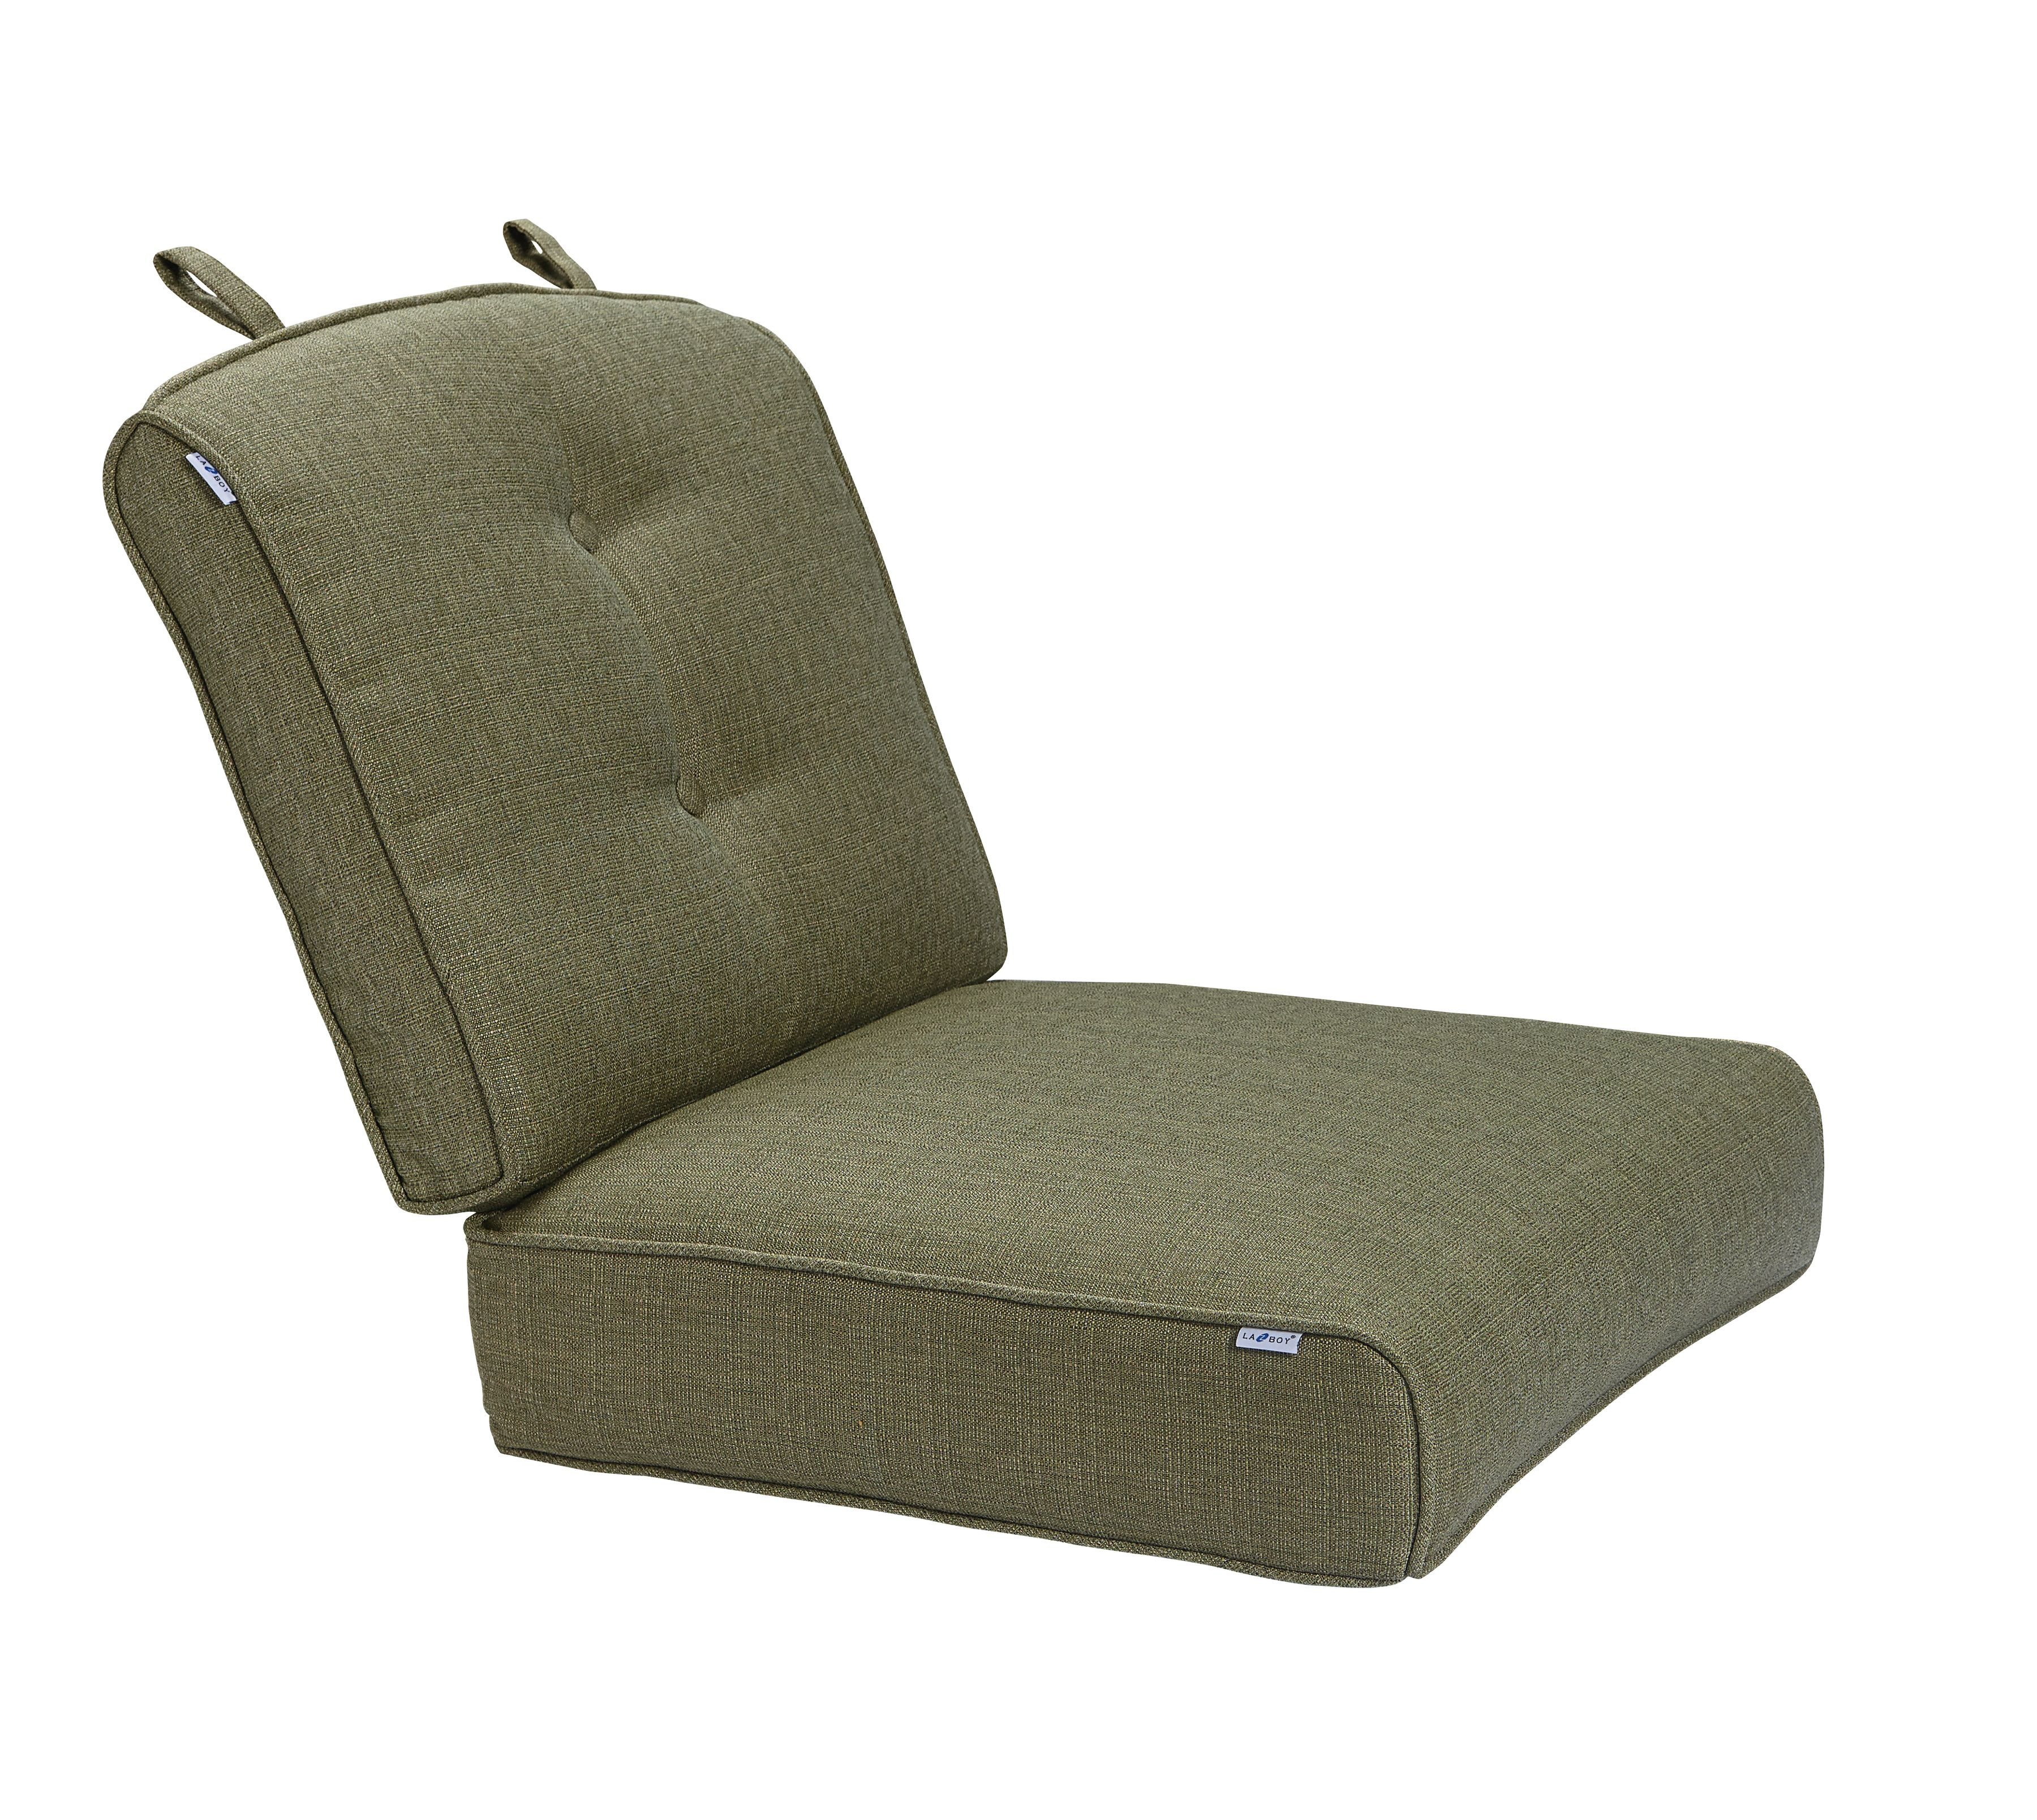 Best ideas about Outdoor Replacement Cushions . Save or Pin La Z Boy Peyton Replacement Seating Cushion Limited Now.